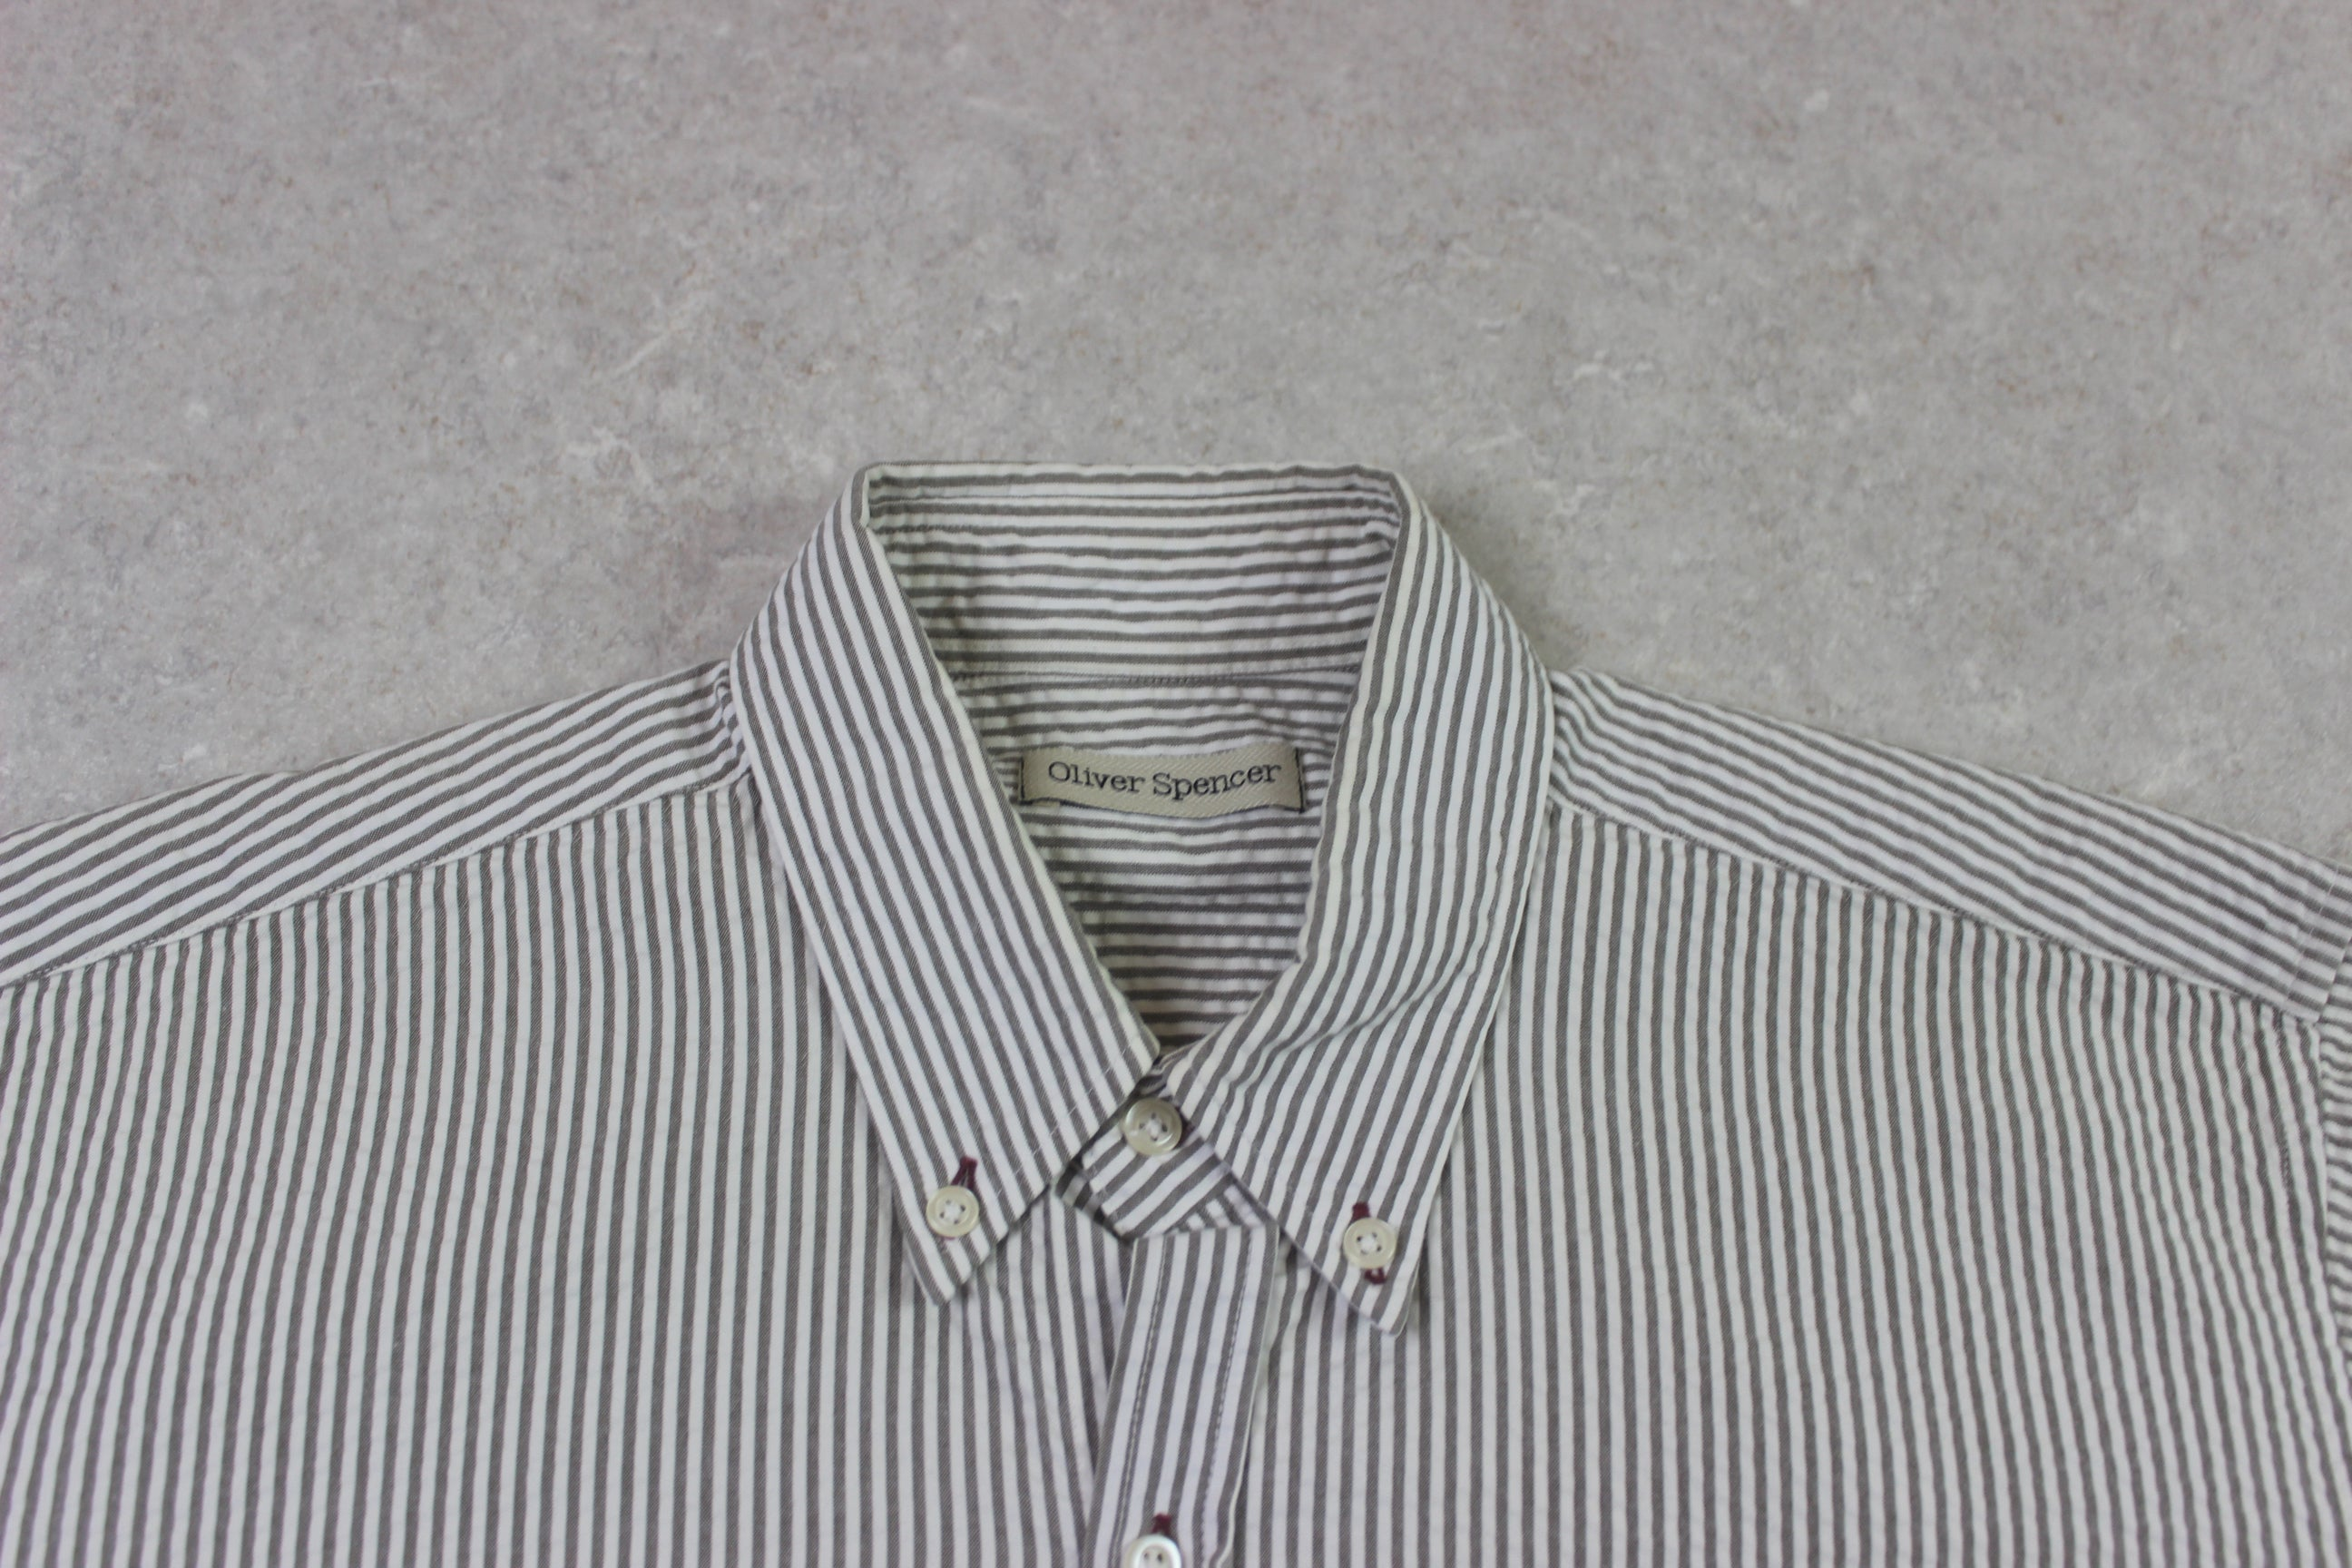 Oliver Spencer - Seersucker Shirt - Grey/White Stripe - 15.5/Medium